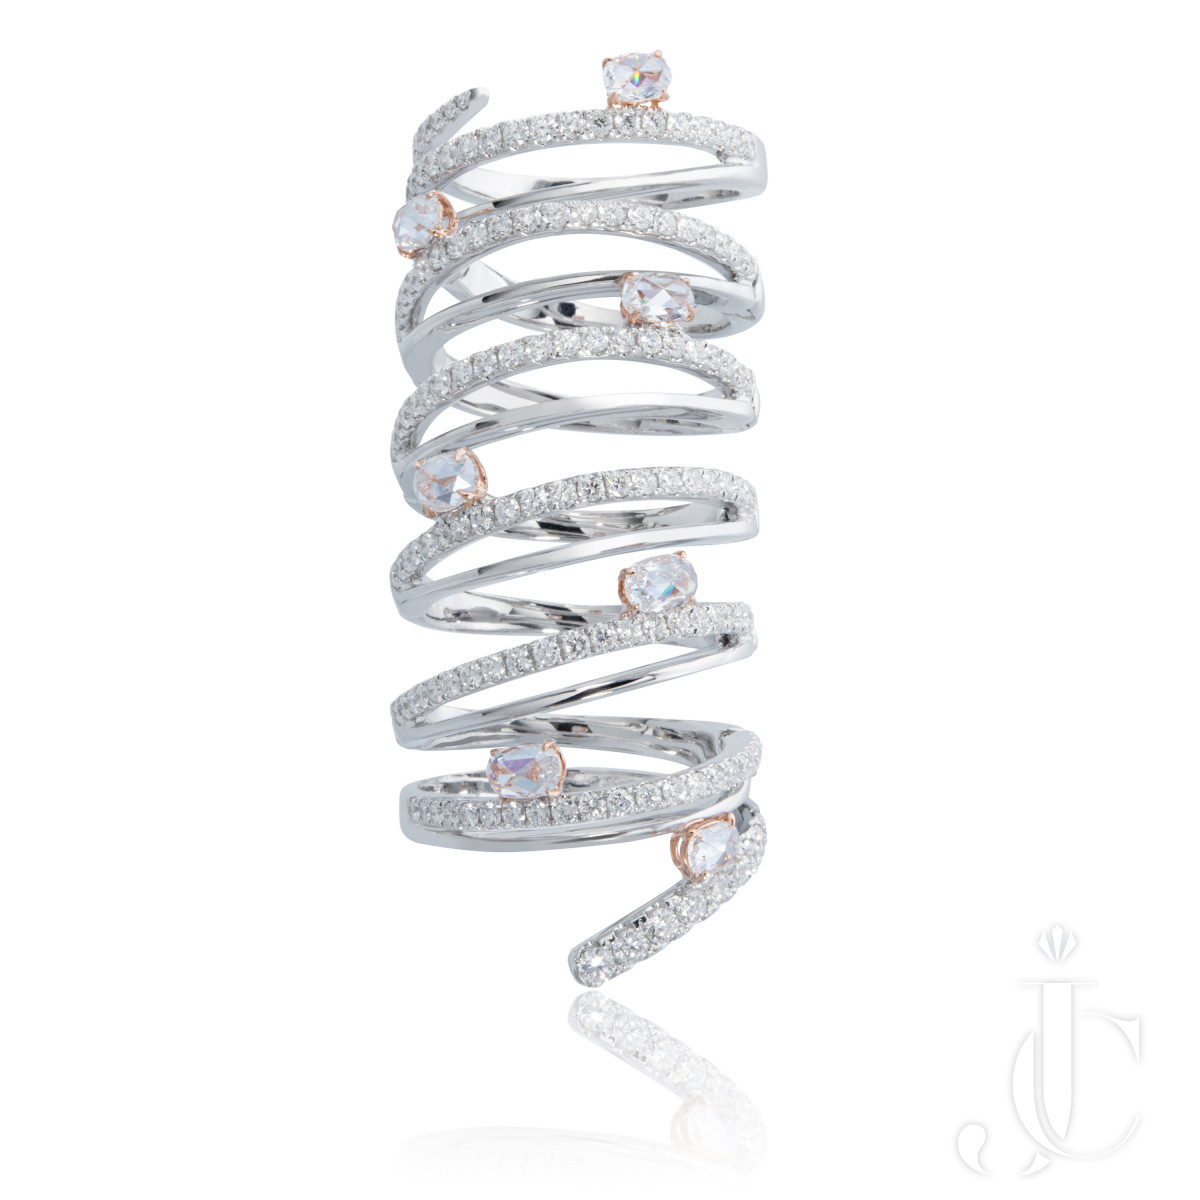 An Order of Bling Articulated Diamond Cocktail Ring